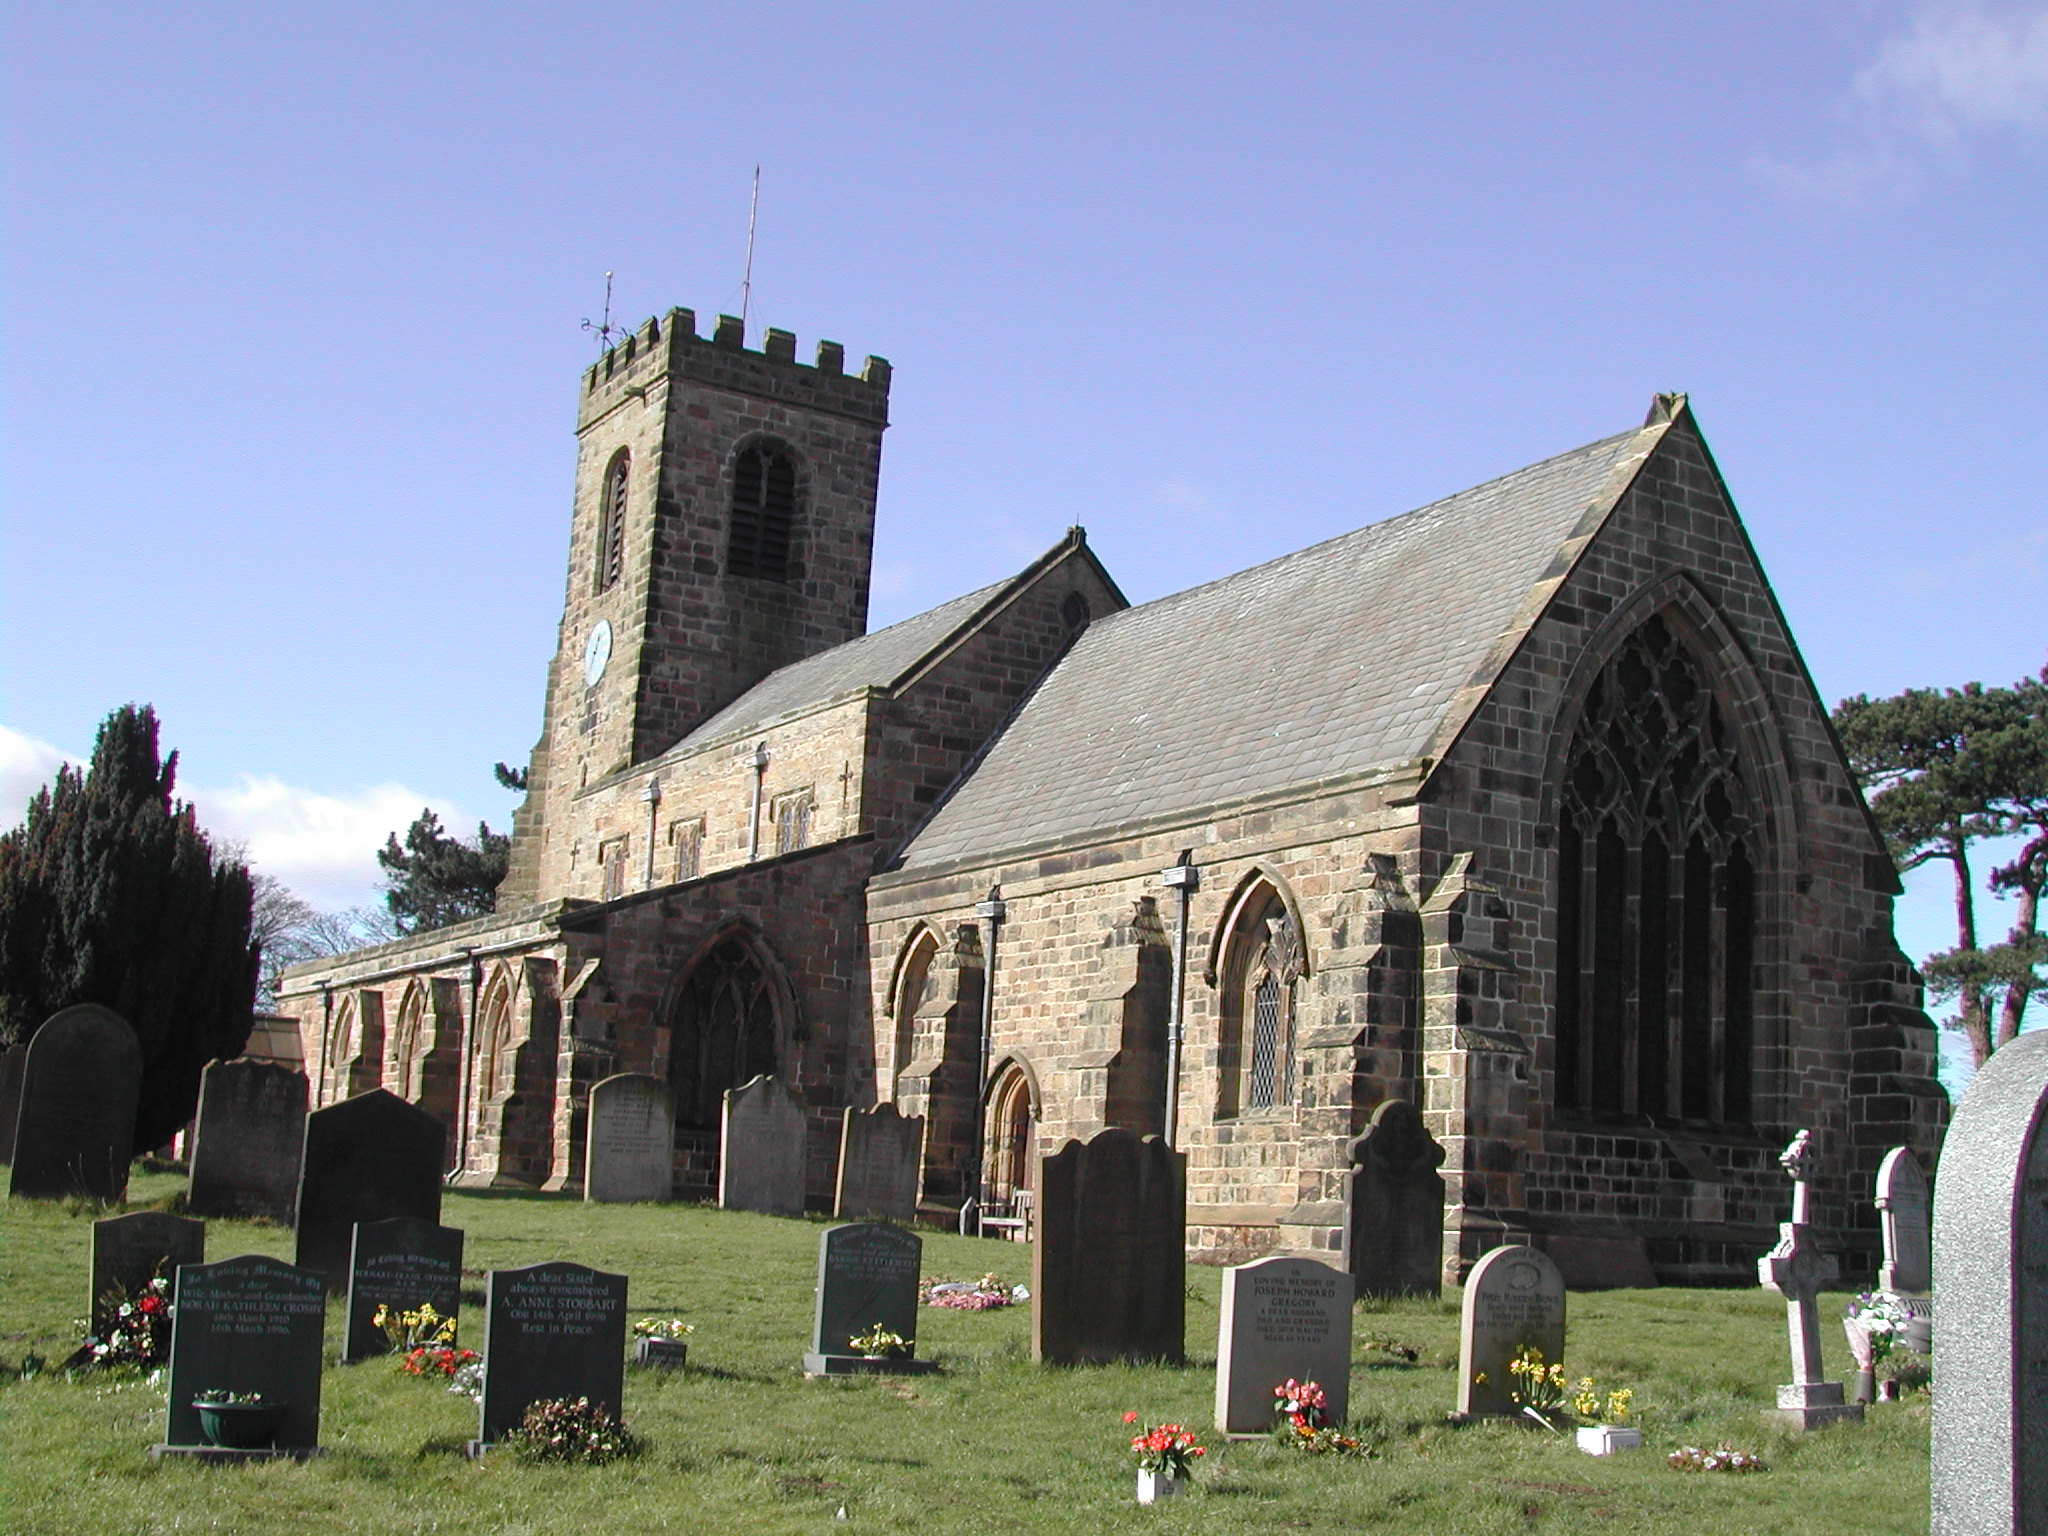 St Helen's Church, Ainderby Steeple